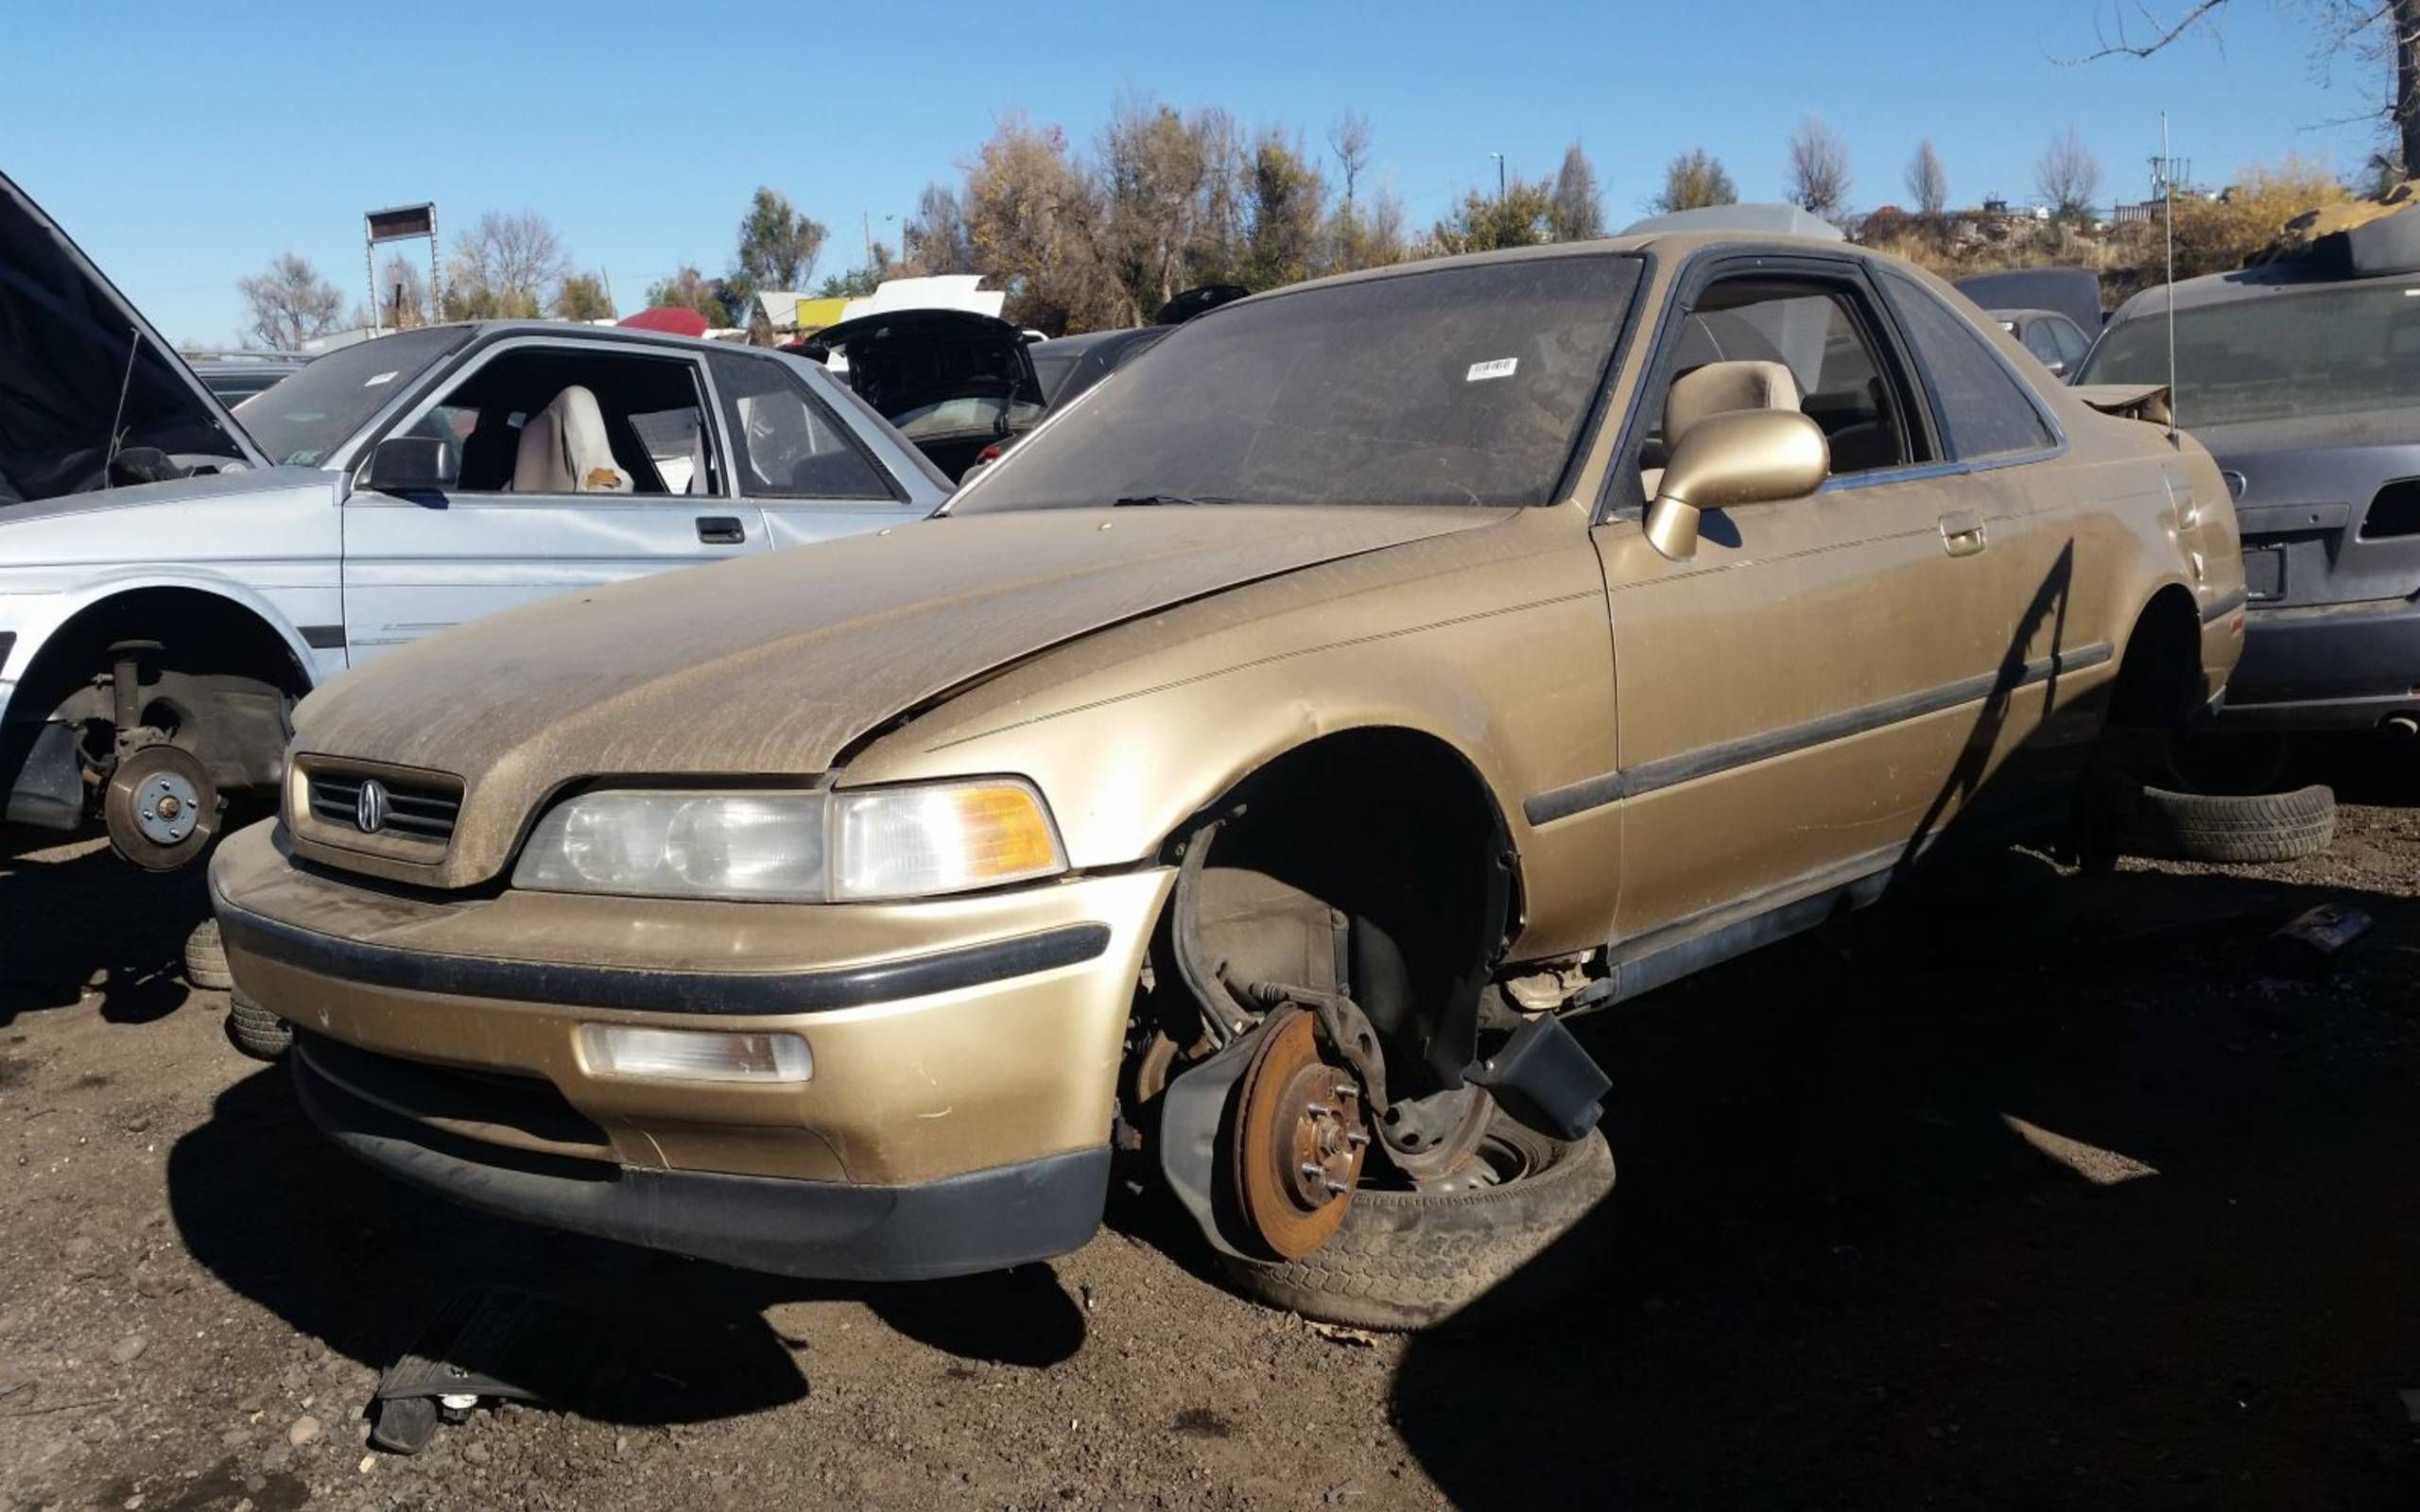 Junked 1991 Acura Legend Coupe